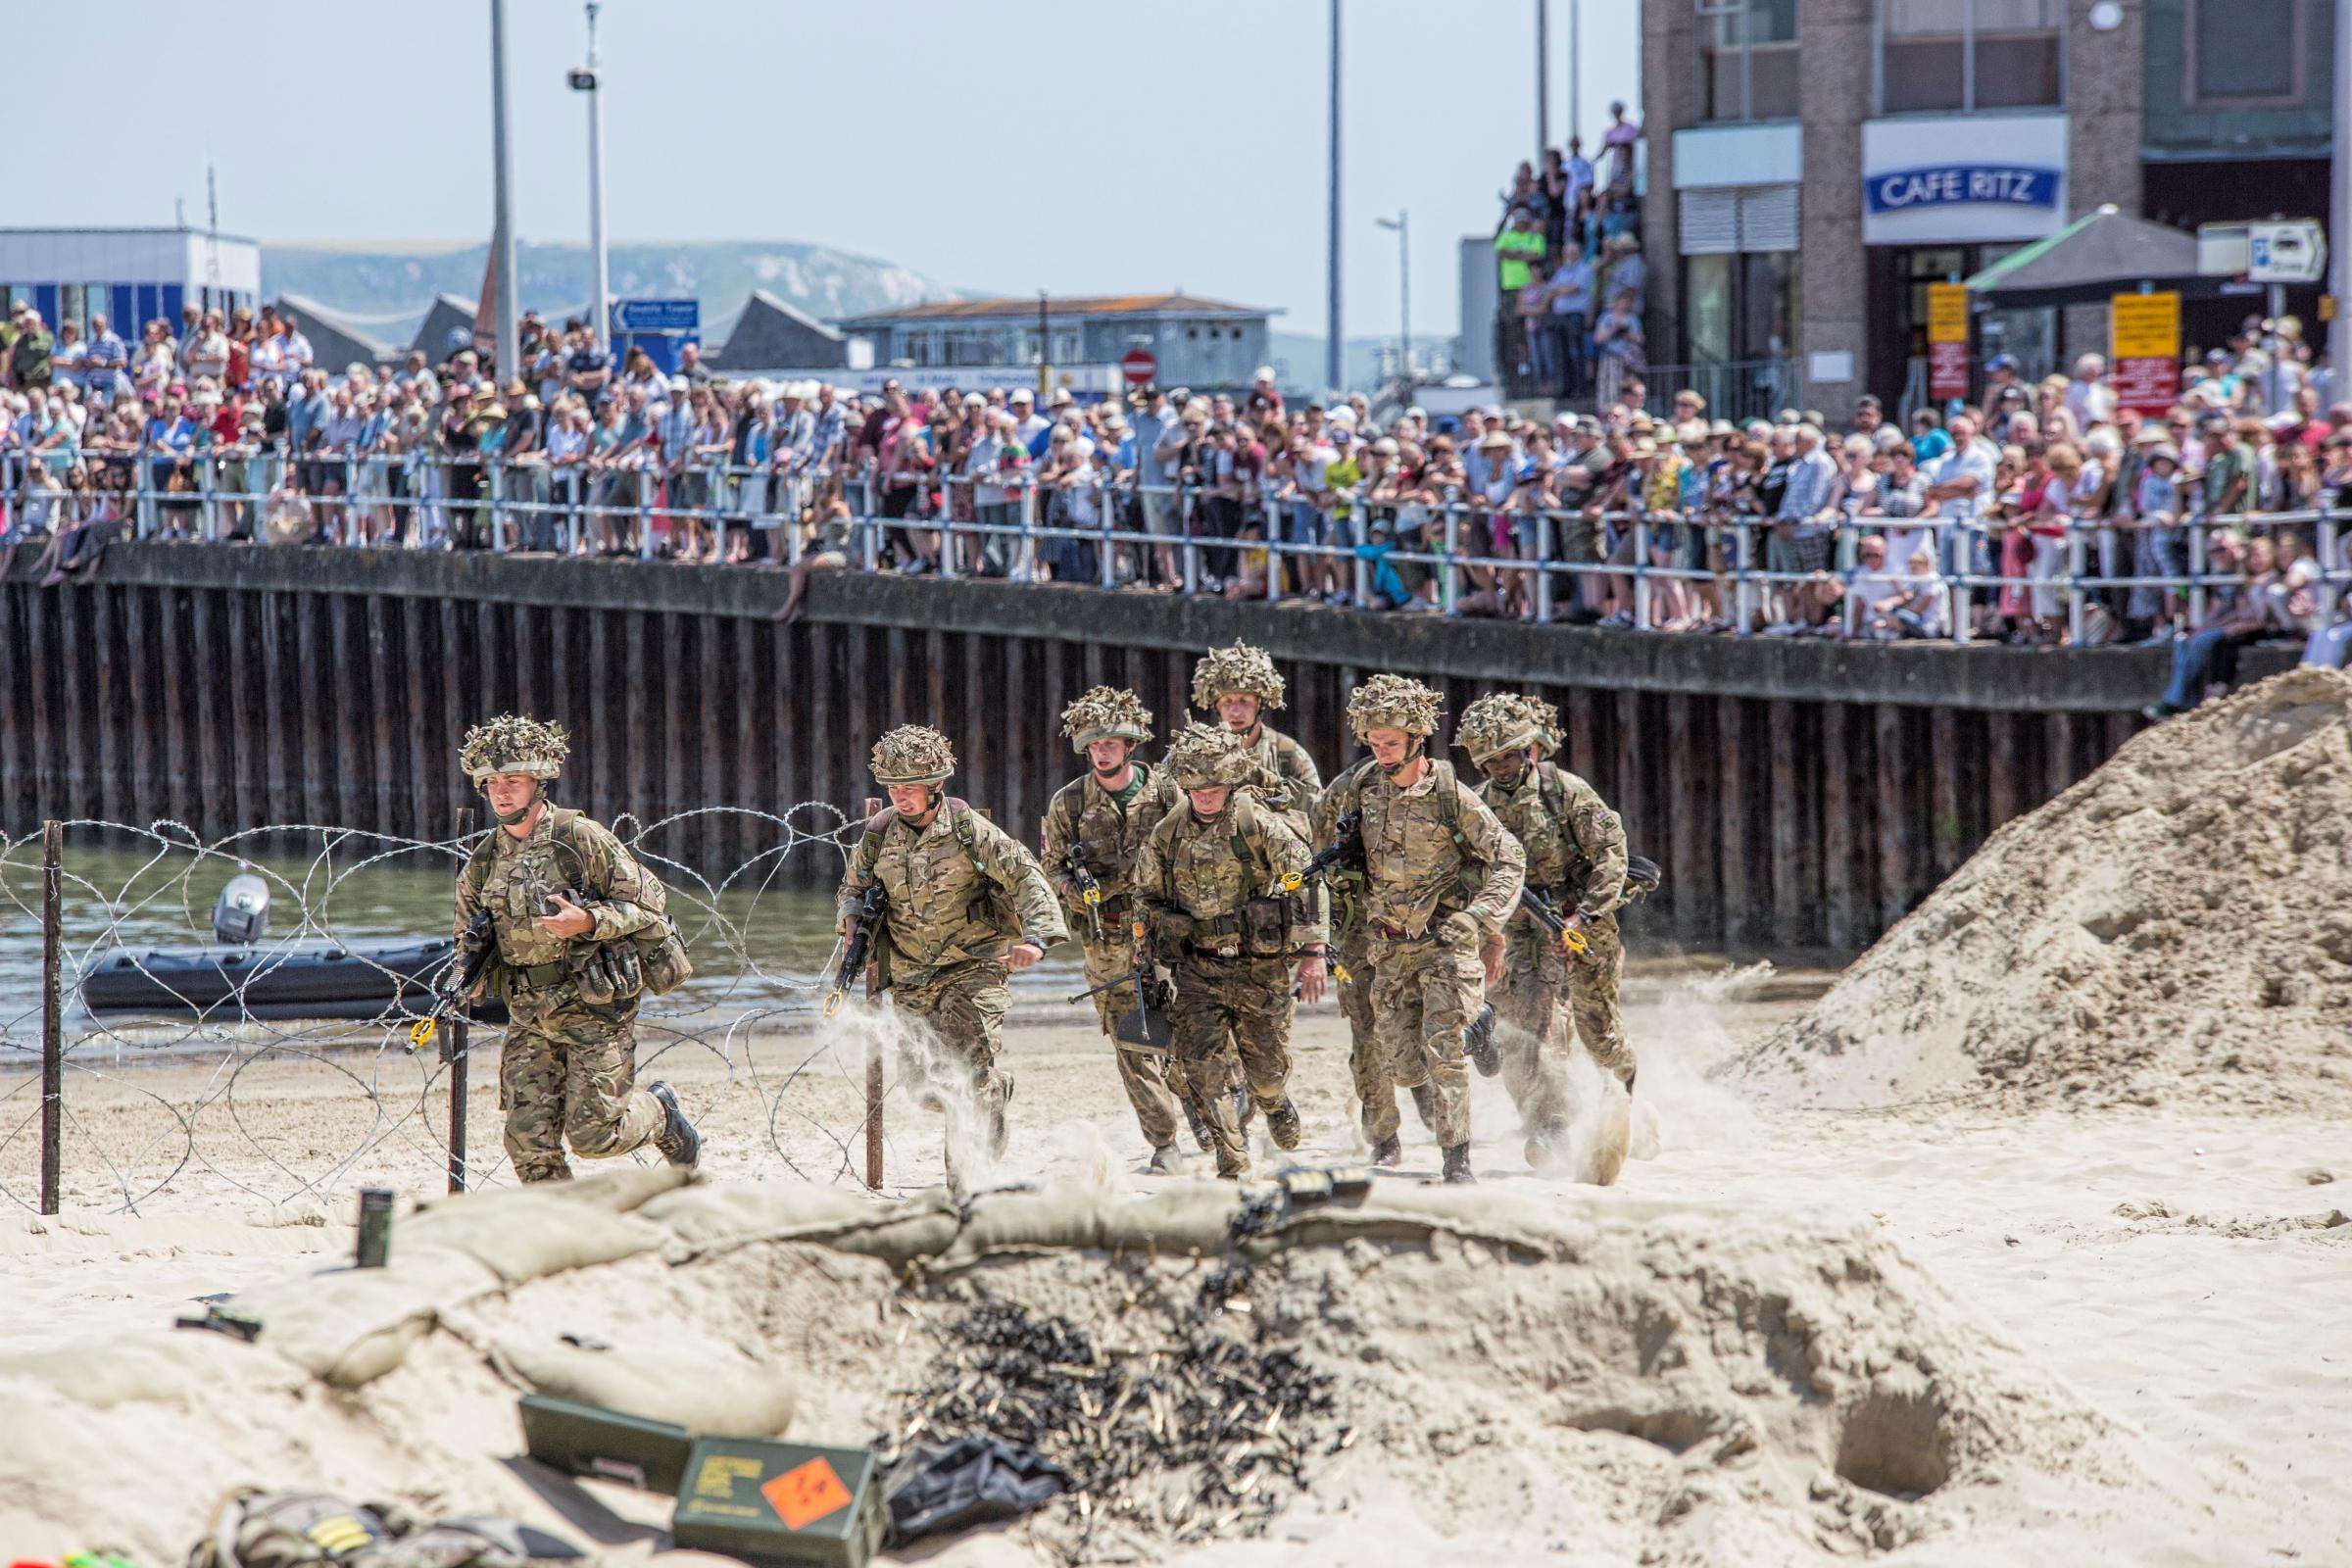 Weymouth shows wartime spirit for Armed Forces Day